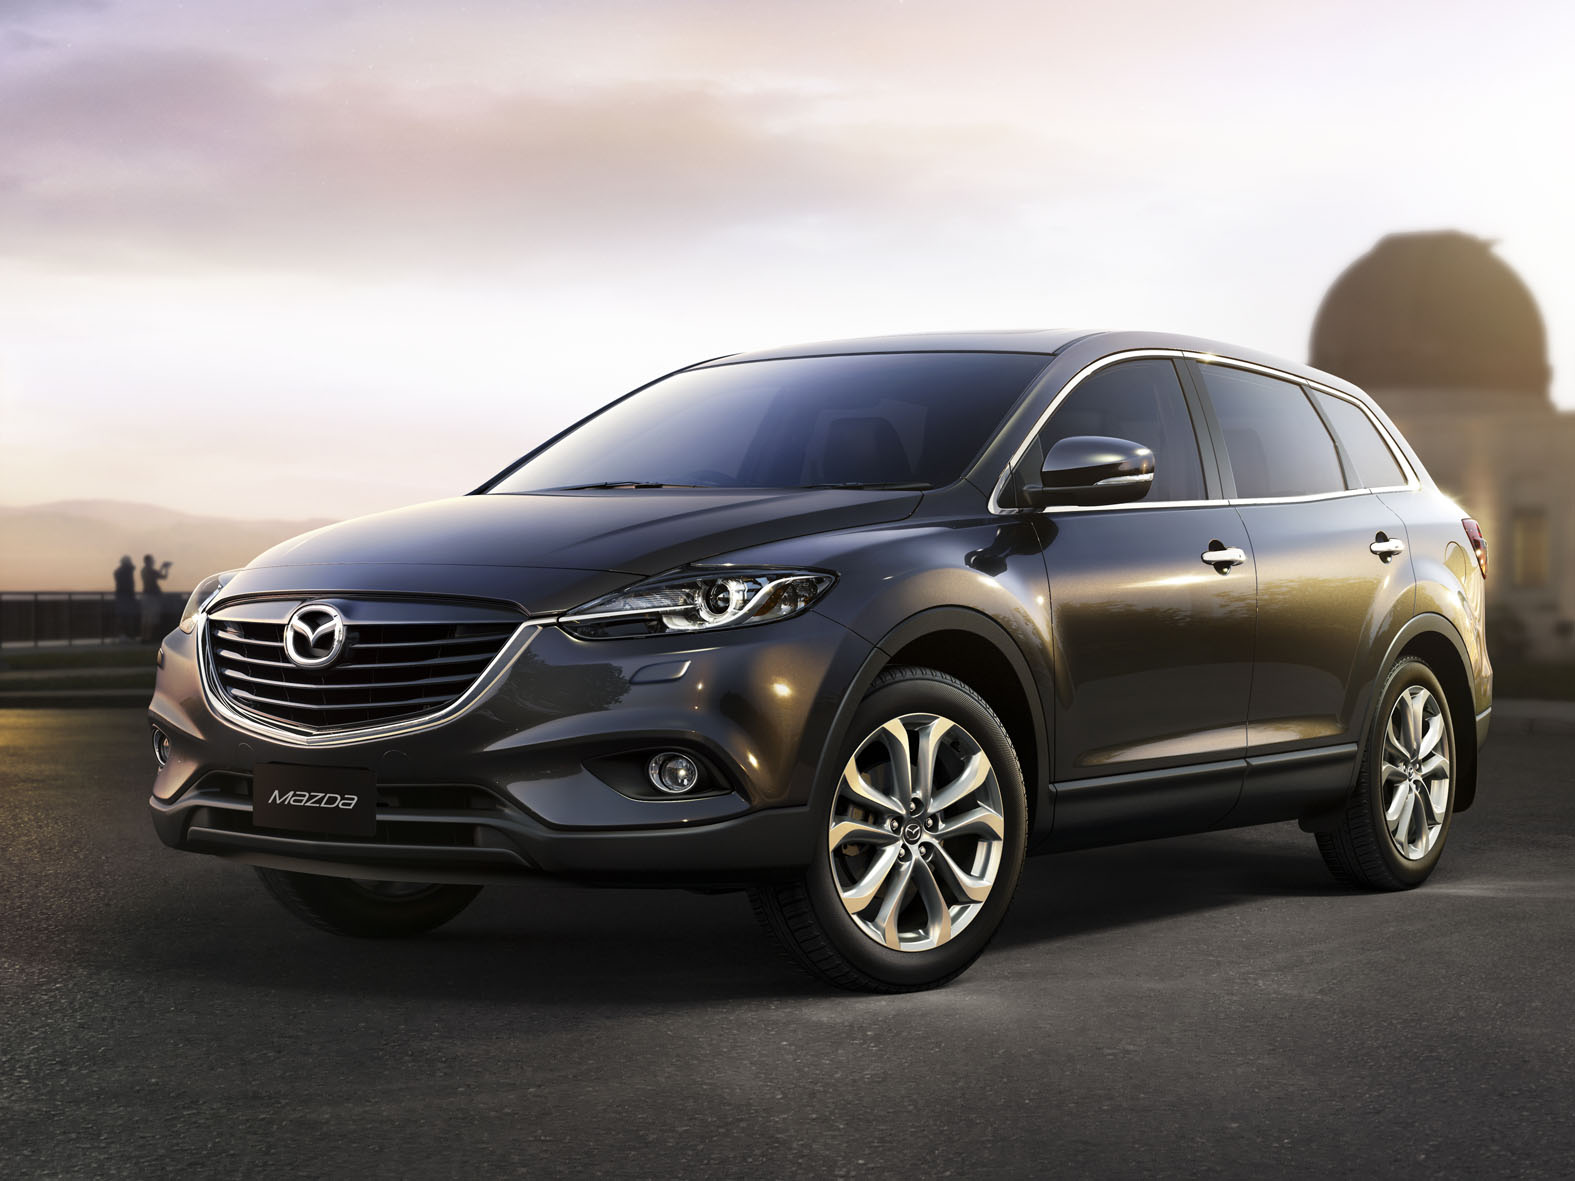 2013 mazda cx 9 review ratings specs prices and photos. Black Bedroom Furniture Sets. Home Design Ideas